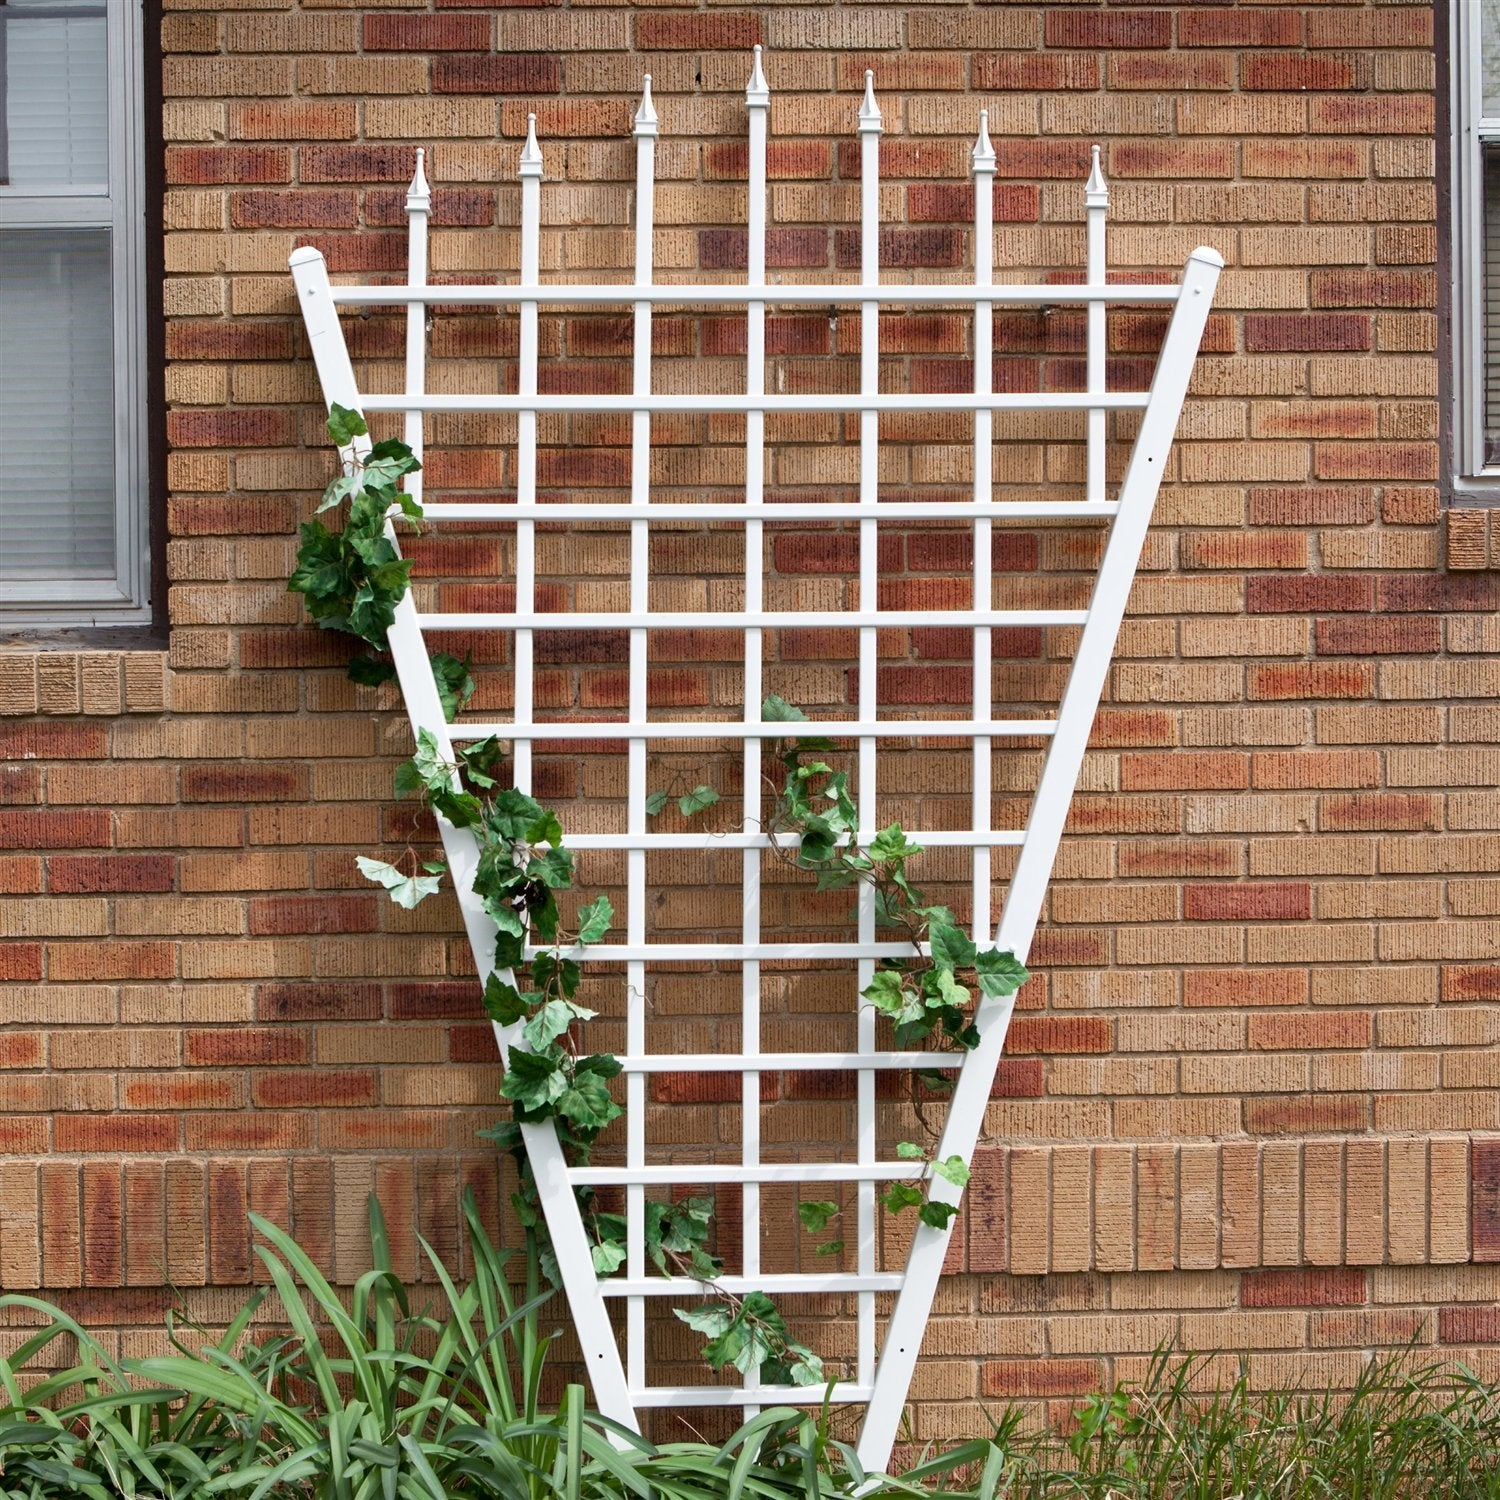 7.75 Ft Fan Shaped Garden Trellis with Pointed Finals in White Vinyl